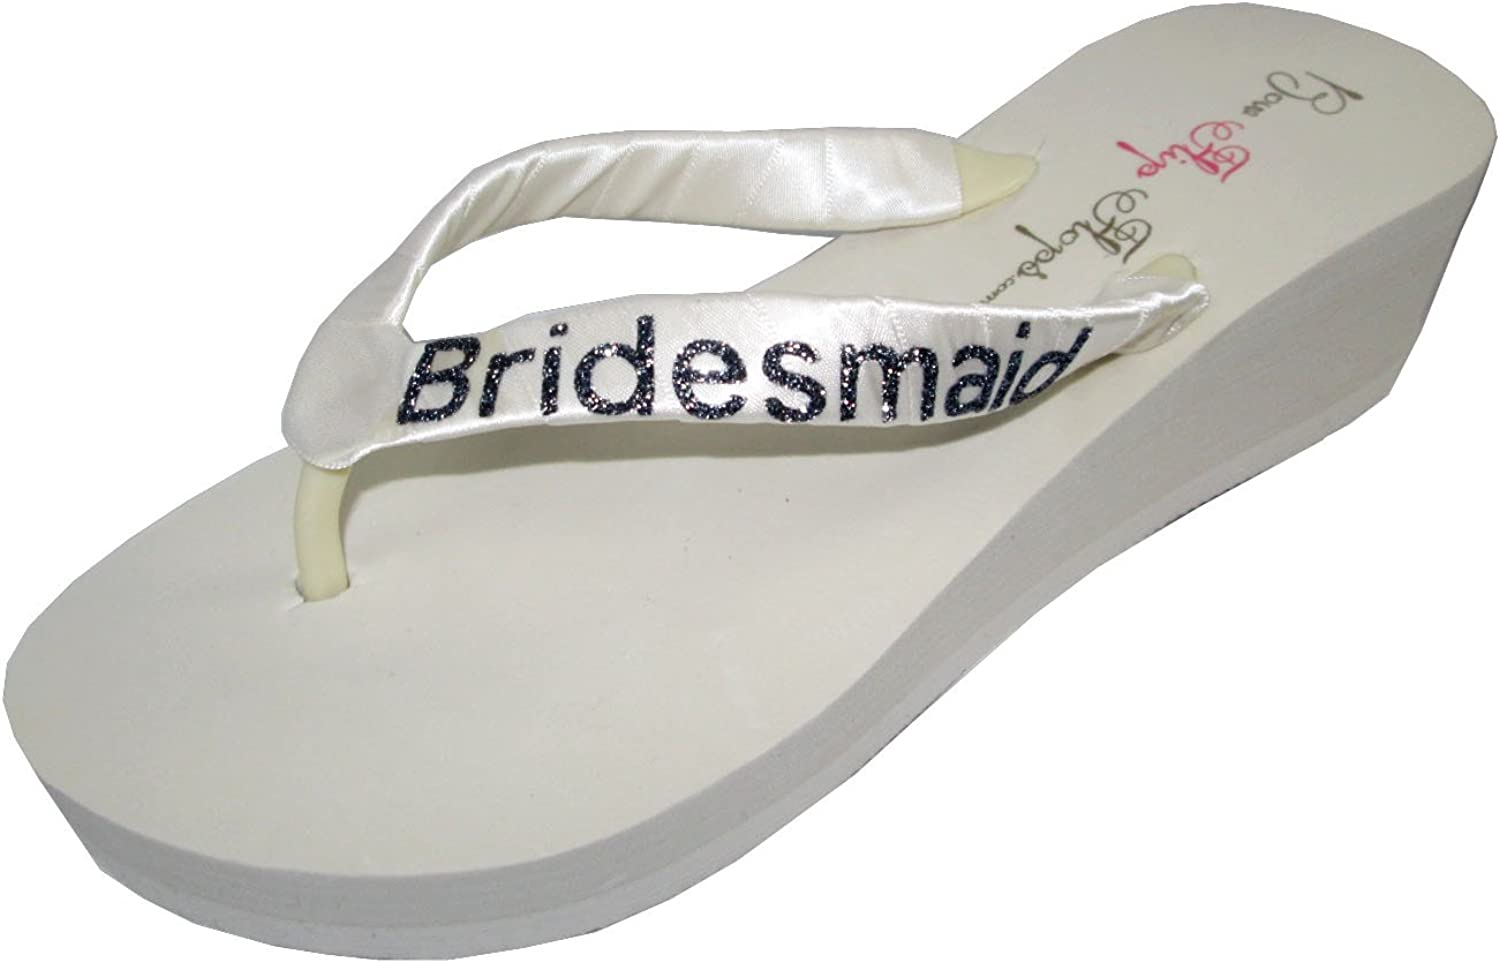 Bridesmaid Glitter Satin Strap Flip Flops in Ivory and Black